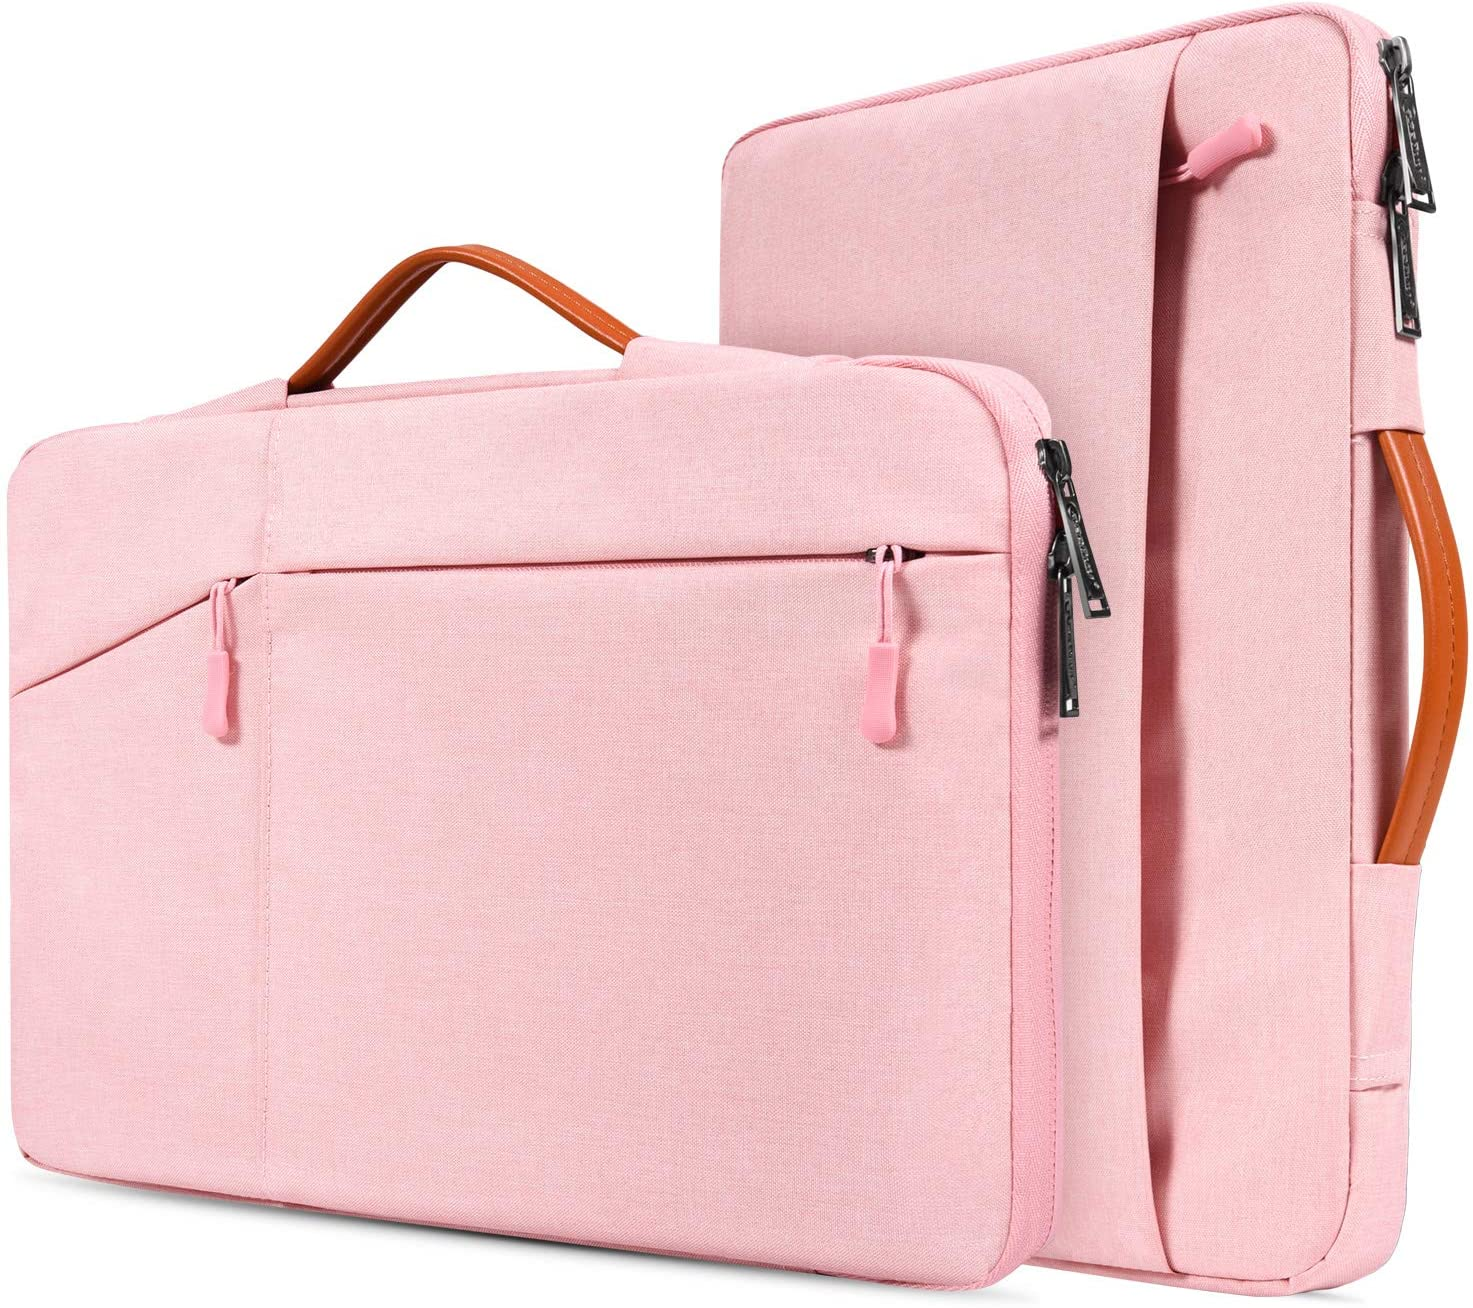 14-15 Inch Waterpoof Laptop Sleeve security cheap Bag Pro A1990 15 for MacBook